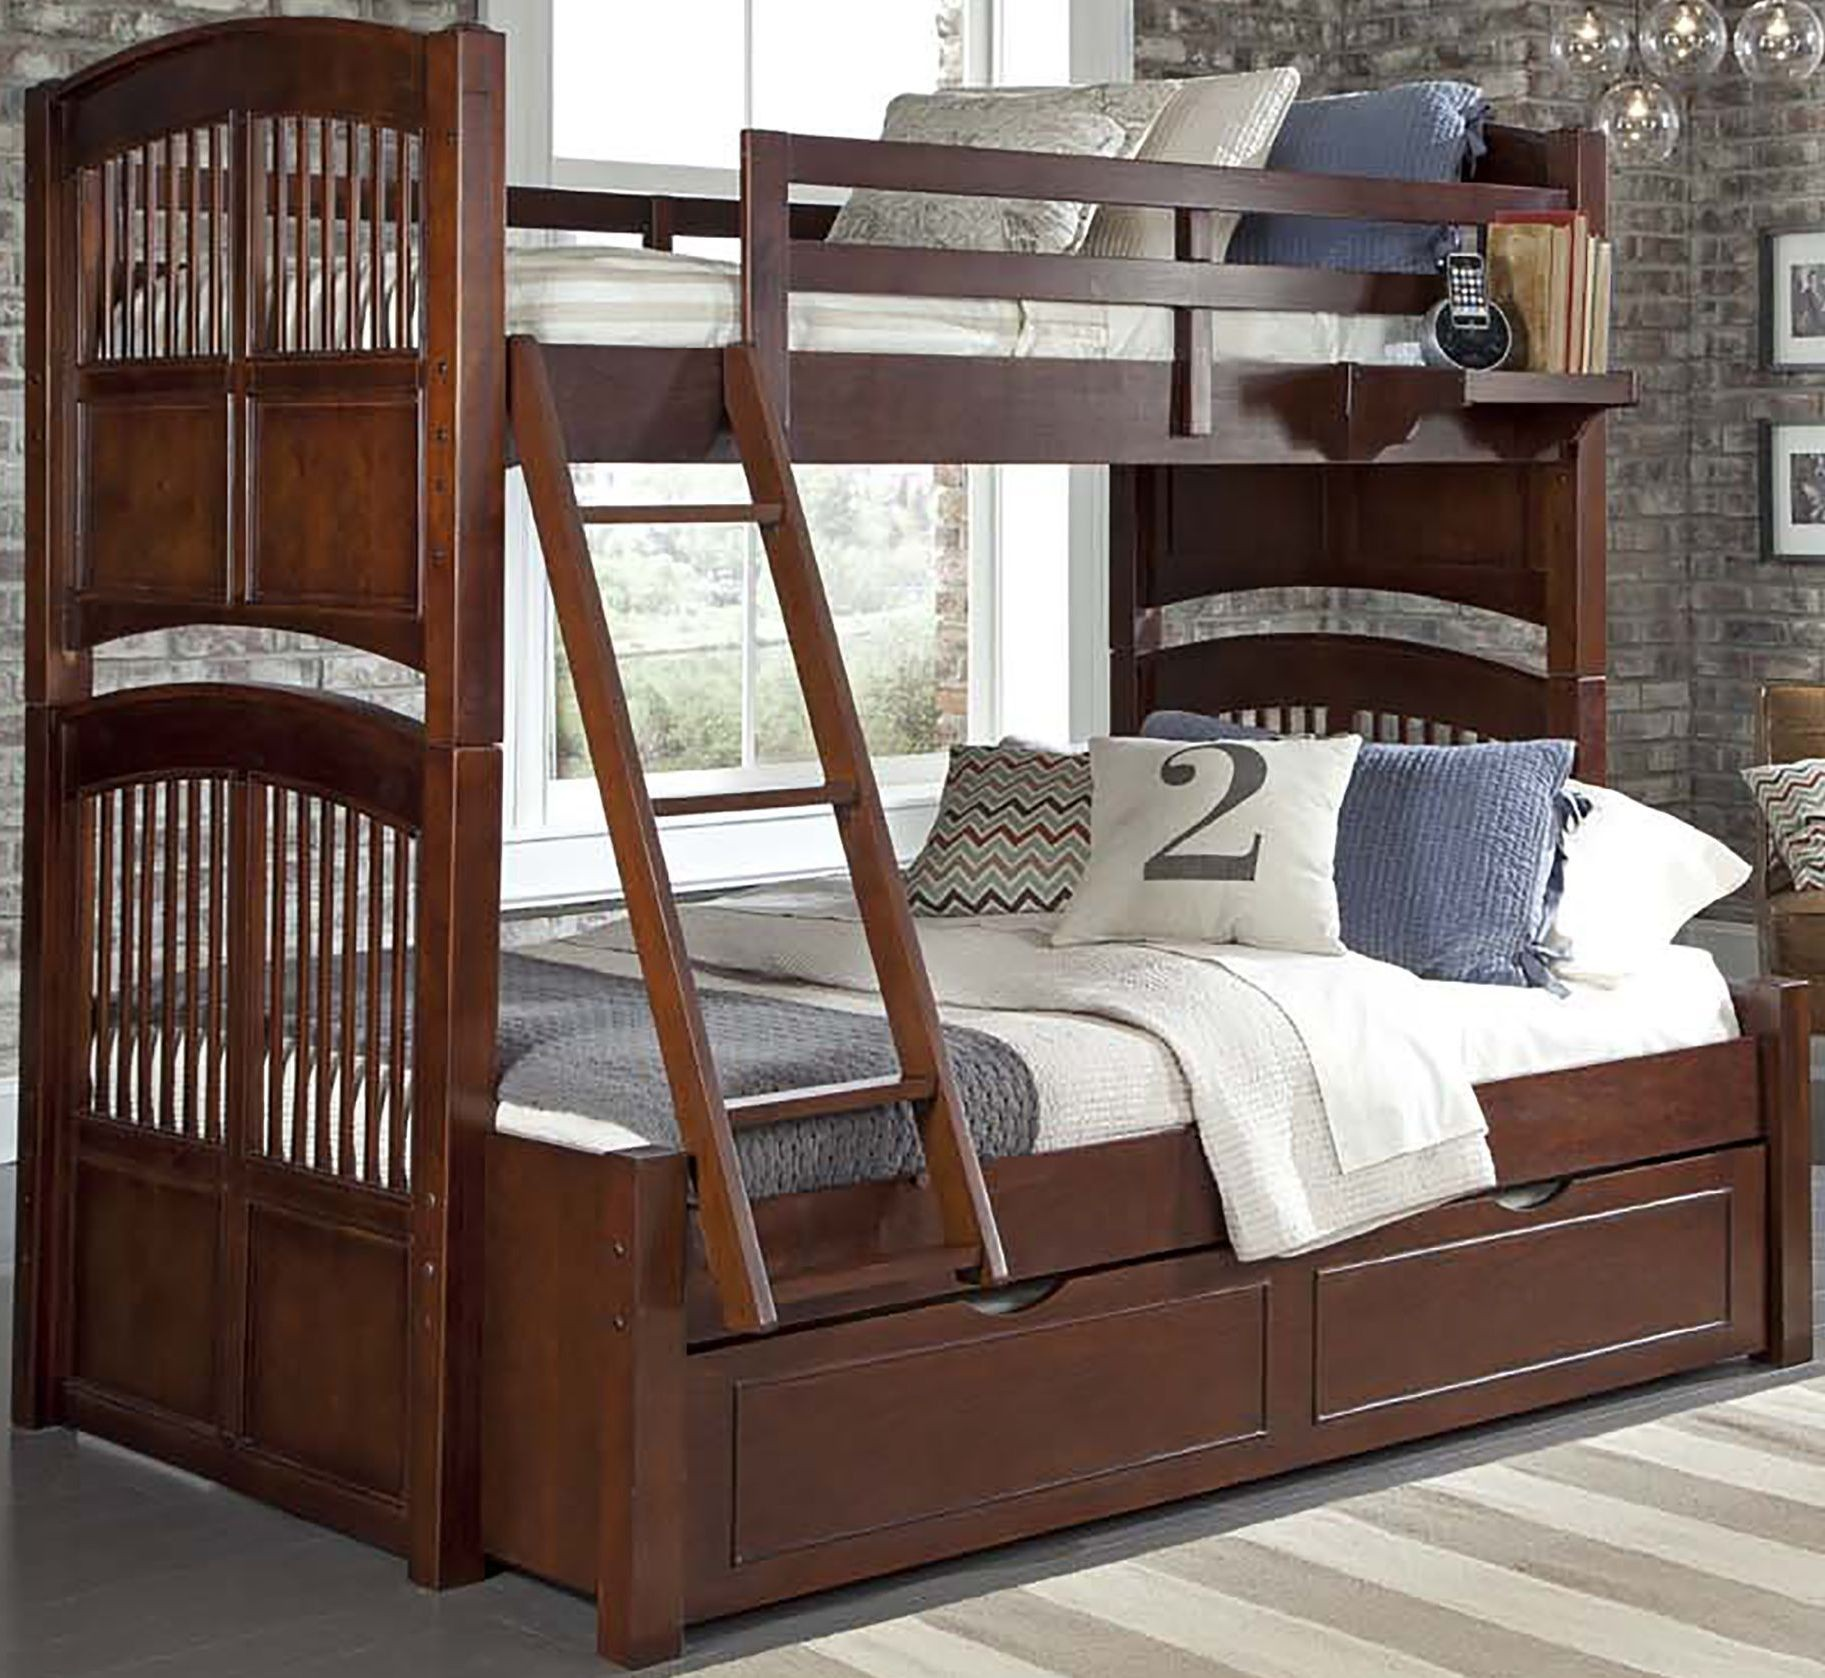 walnut street chestnut hayden twin over full bunk bed with trundle 9055nt ne kids. Black Bedroom Furniture Sets. Home Design Ideas